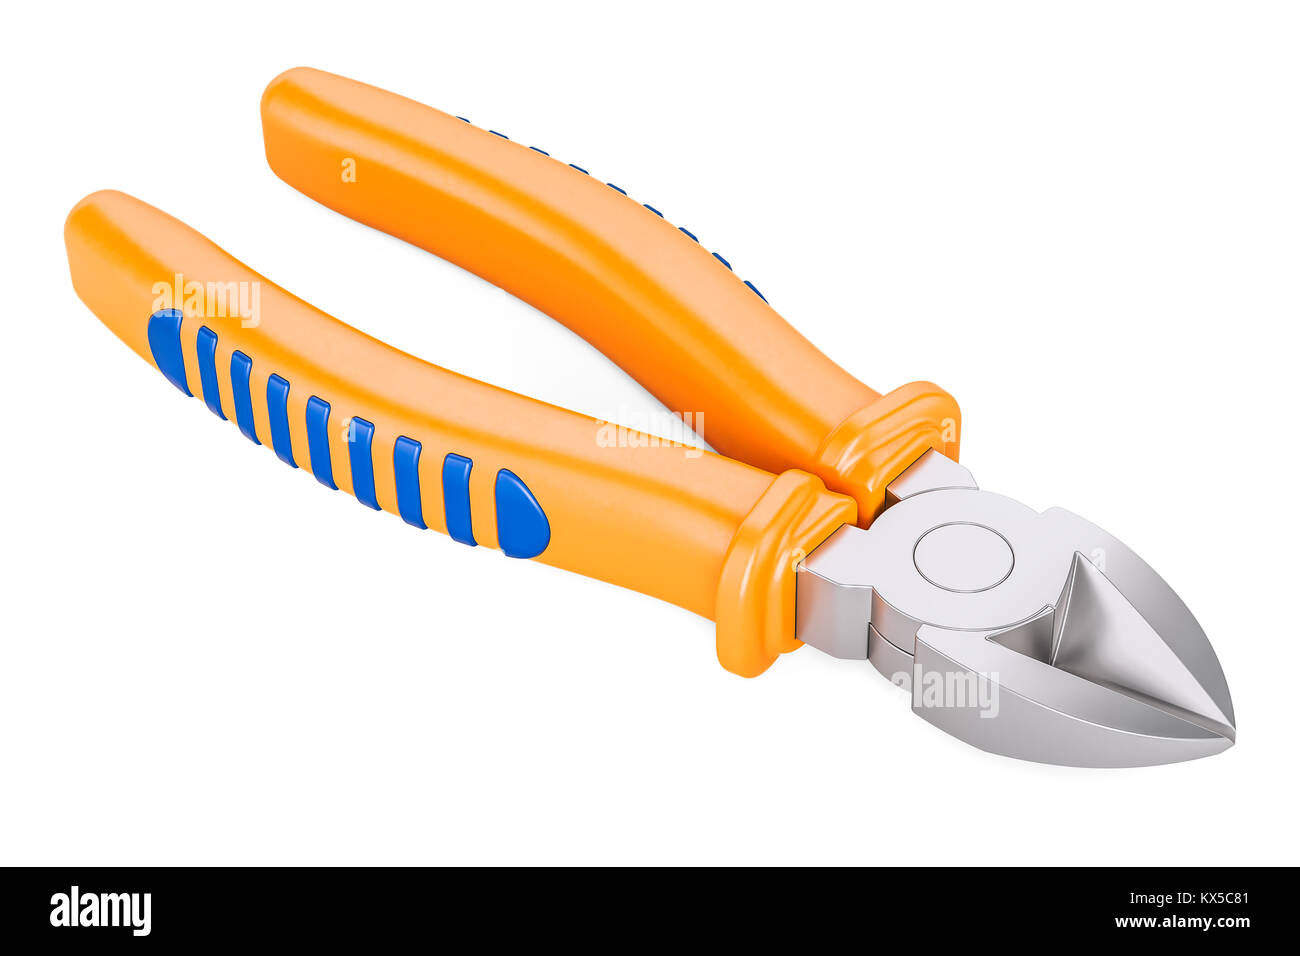 Side Cutting Pliers Stock Photos & Side Cutting Pliers Stock